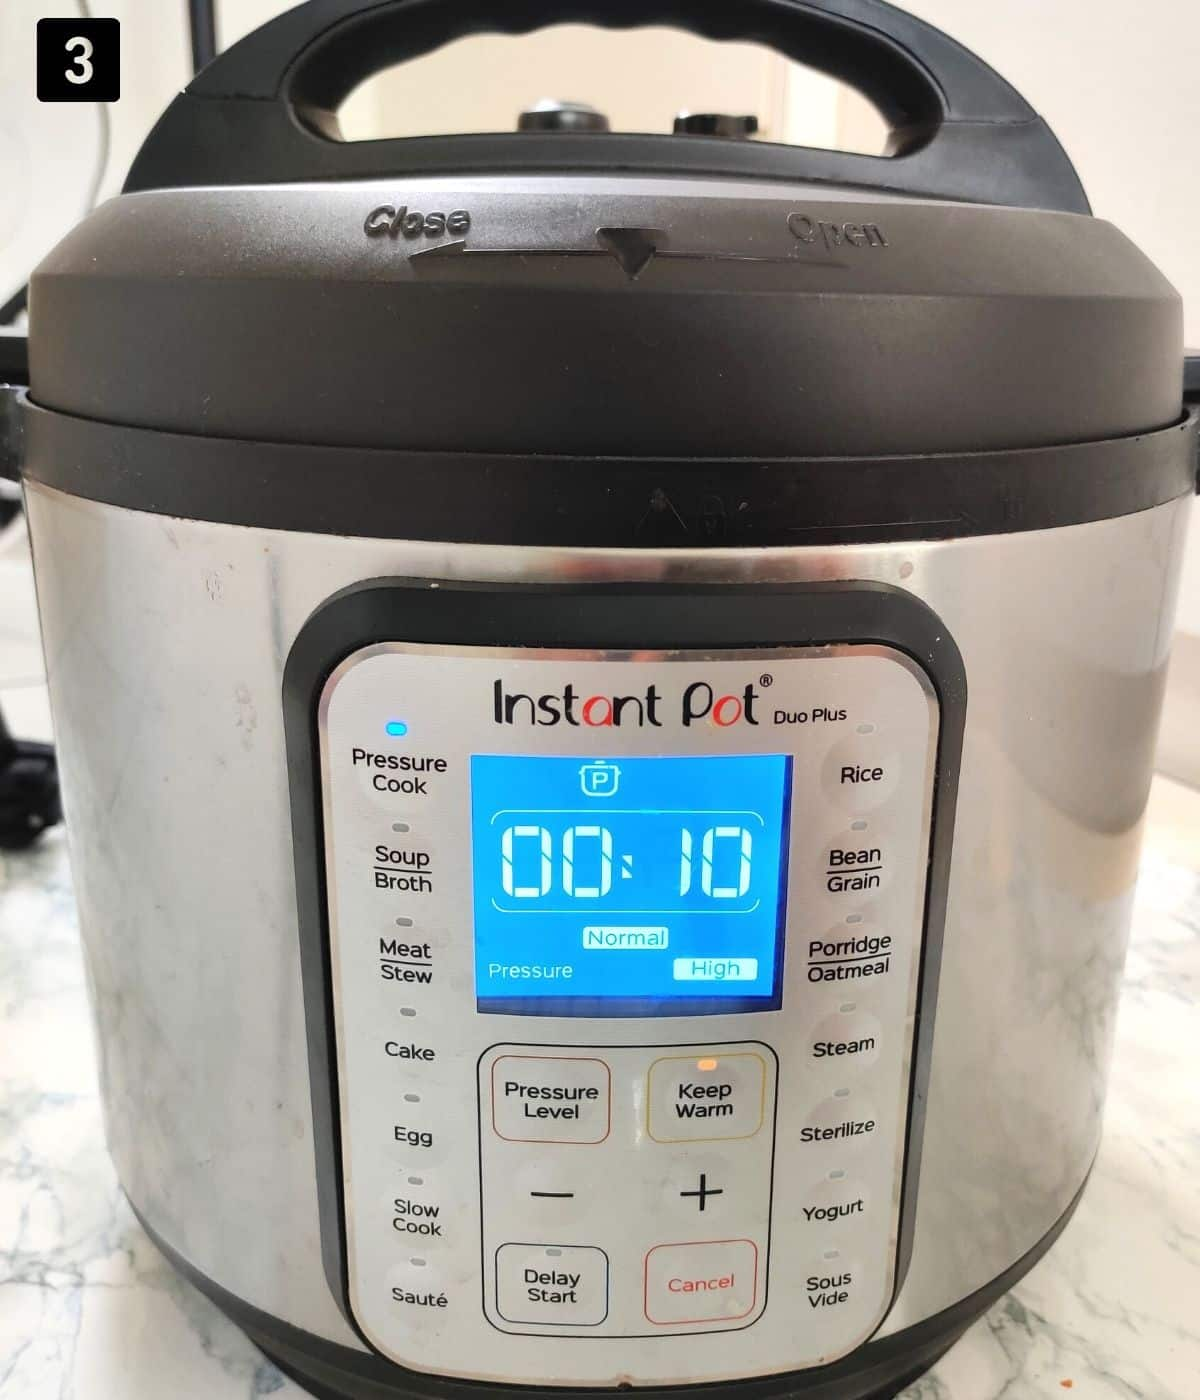 Instant Pot Pressuring cooking for 10 minutes